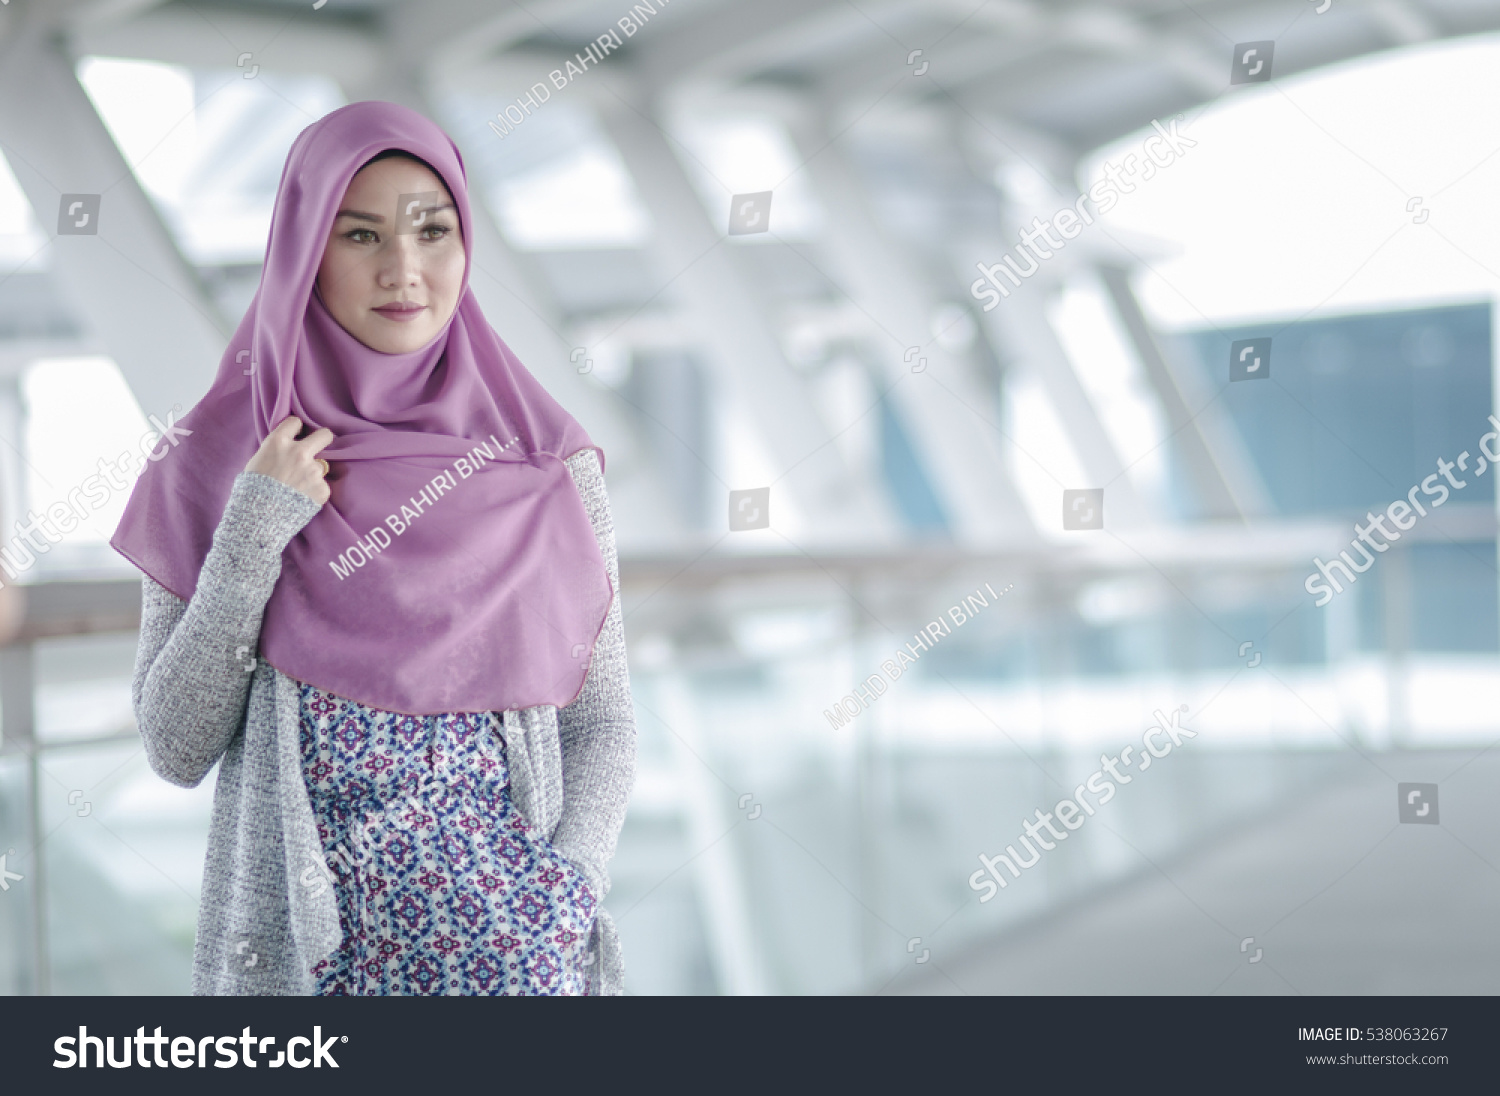 pine grove muslim girl personals Personal ads for pine grove, ca are a great way to find a life partner, movie date, or a quick hookup personals are for people local to pine grove.